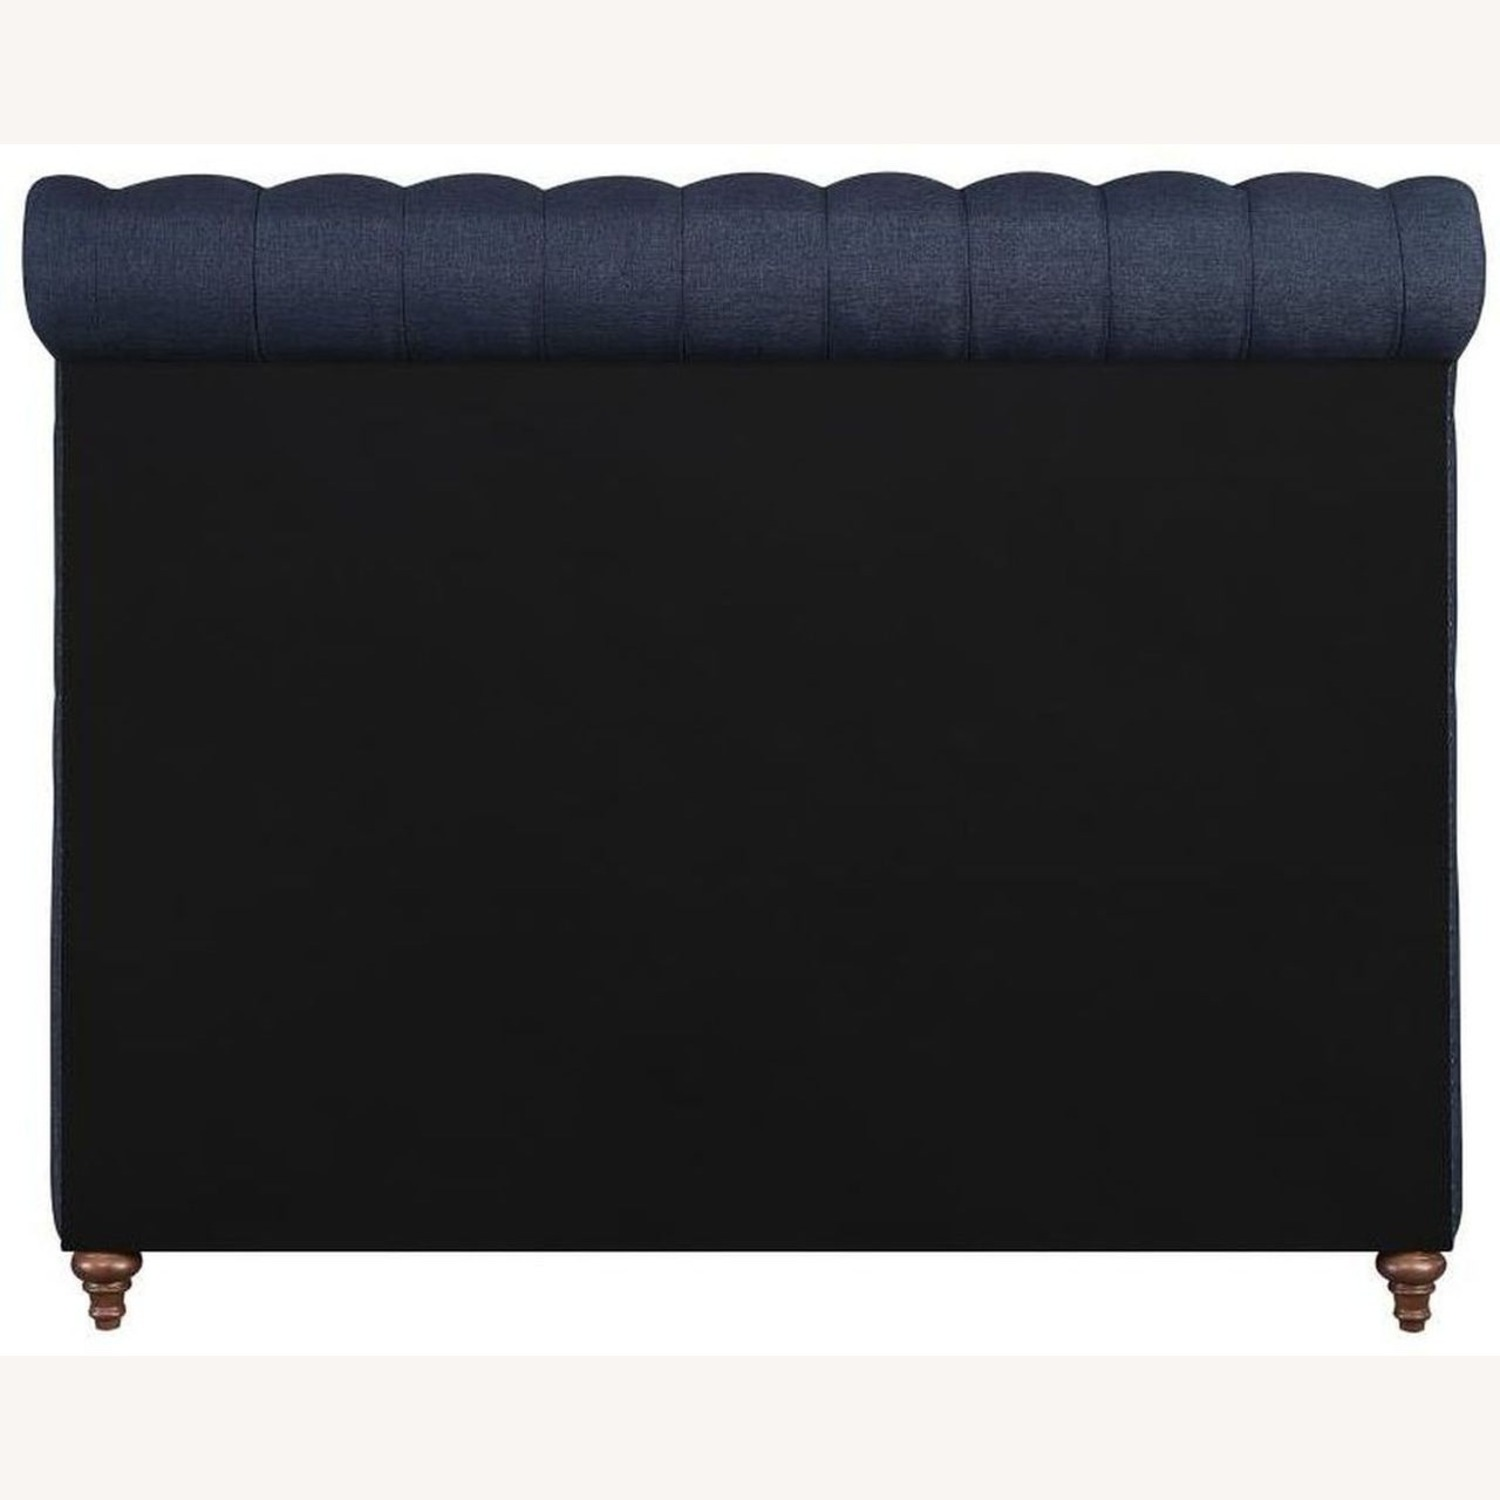 King Bed In Navy Blue Woven Fabric - image-3